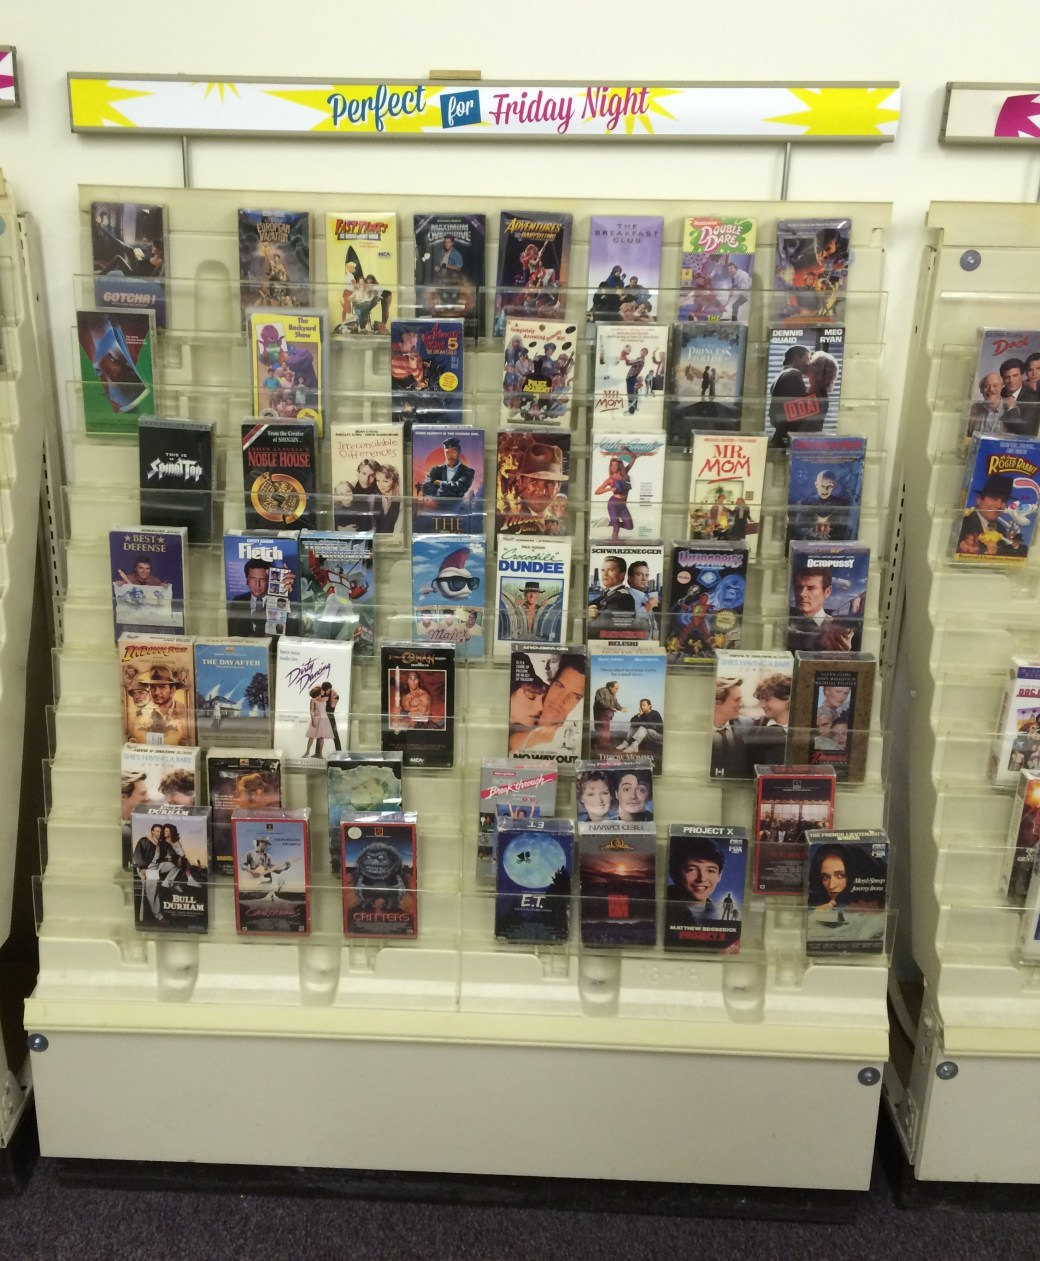 A video rental shelf containing a variety of 1980s classics movies, and some that aren't quite so classic.